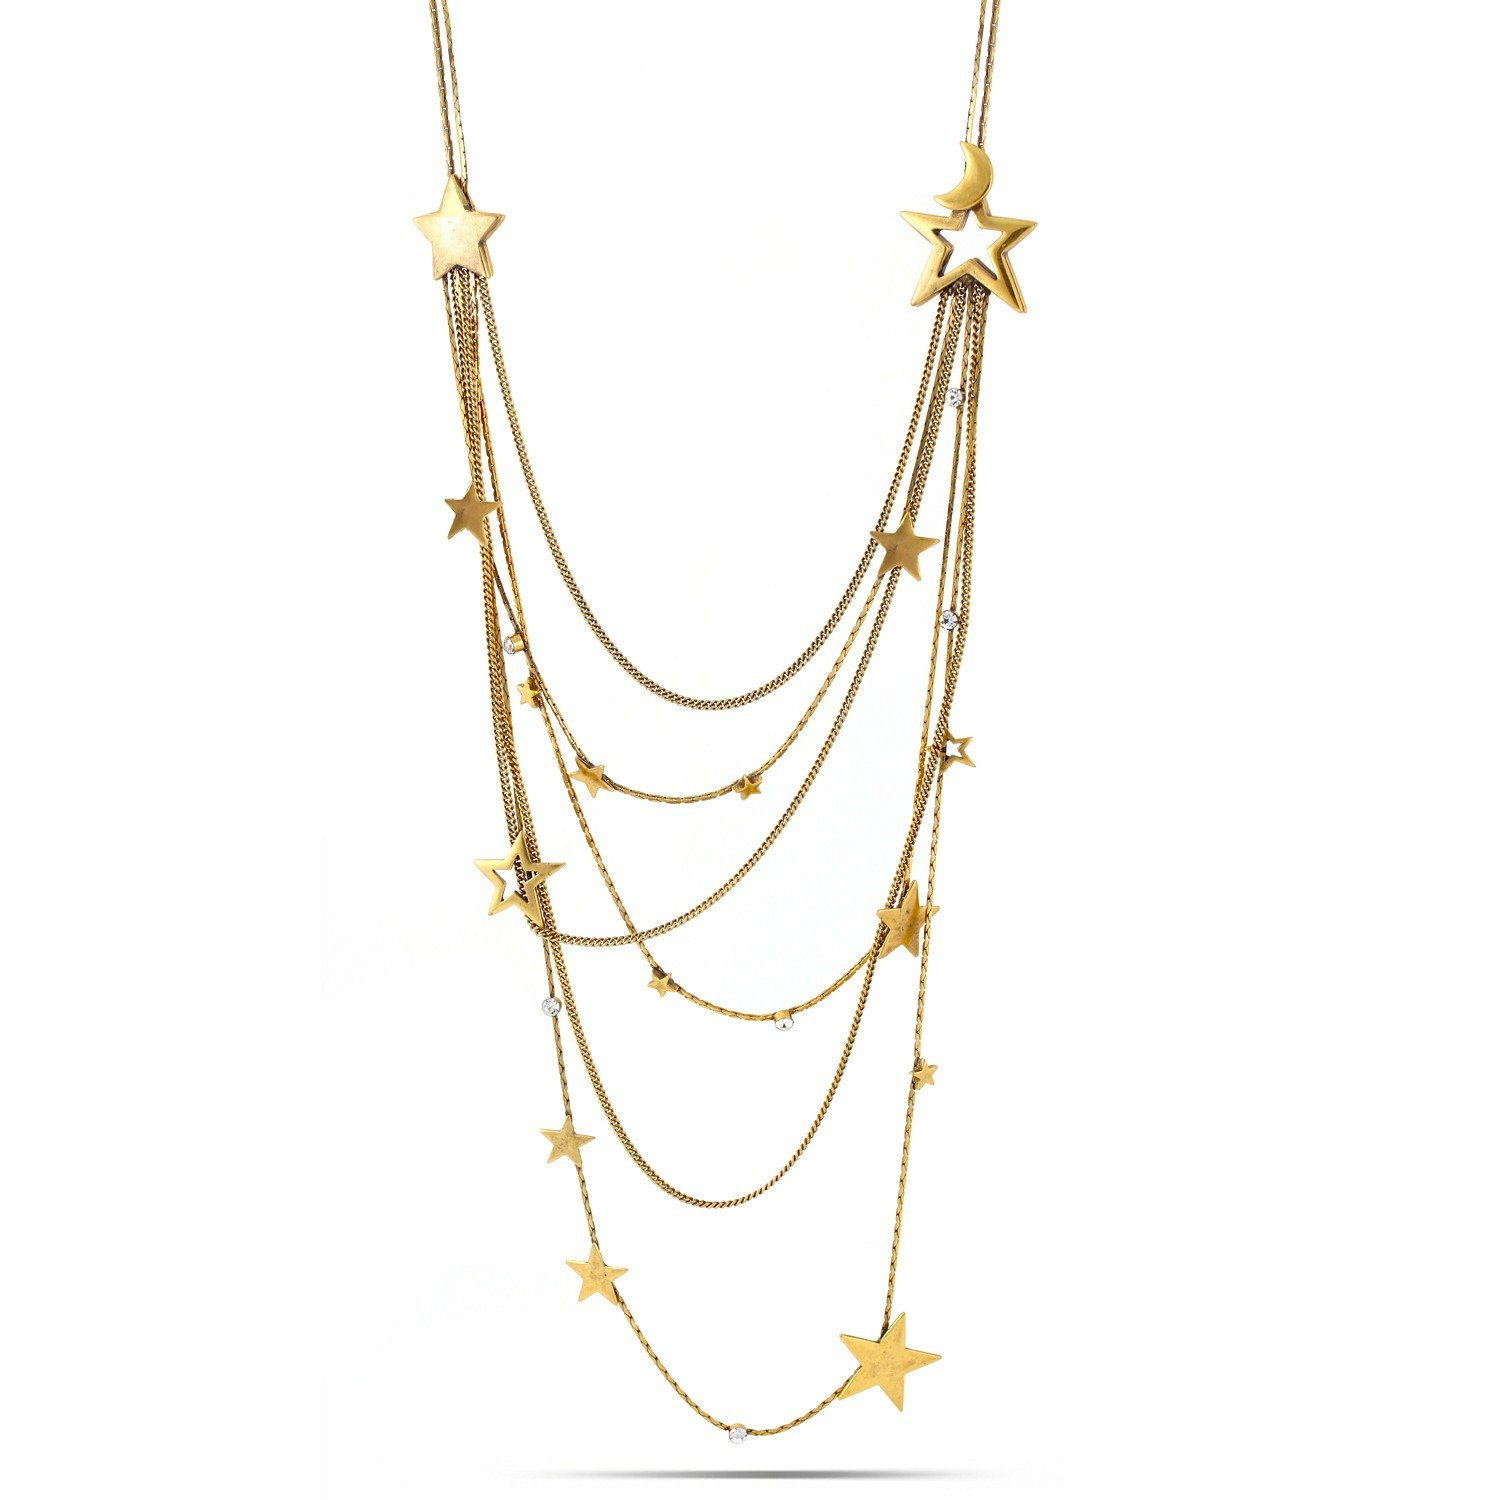 TAZZA GOLD STAR AND MOON CRYSTAL LAYERED LONG NECKLACES #200GD1401